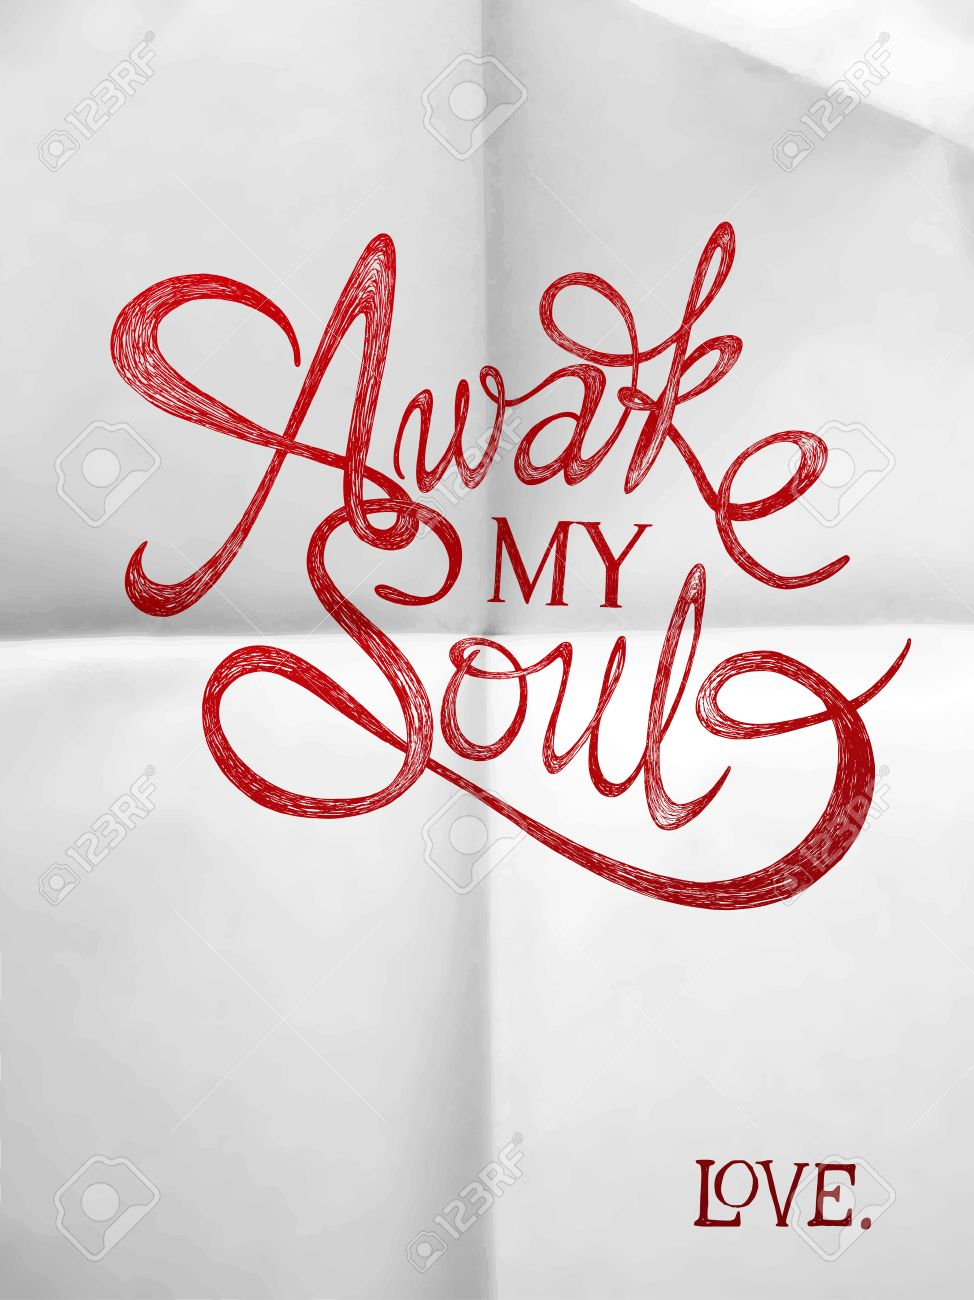 Stock illustration 3d red text quot yes quot stock illustration royalty - Awake My Soul Hand Drawn Quotes On Folded In Four Paper Valentine S Day Stock